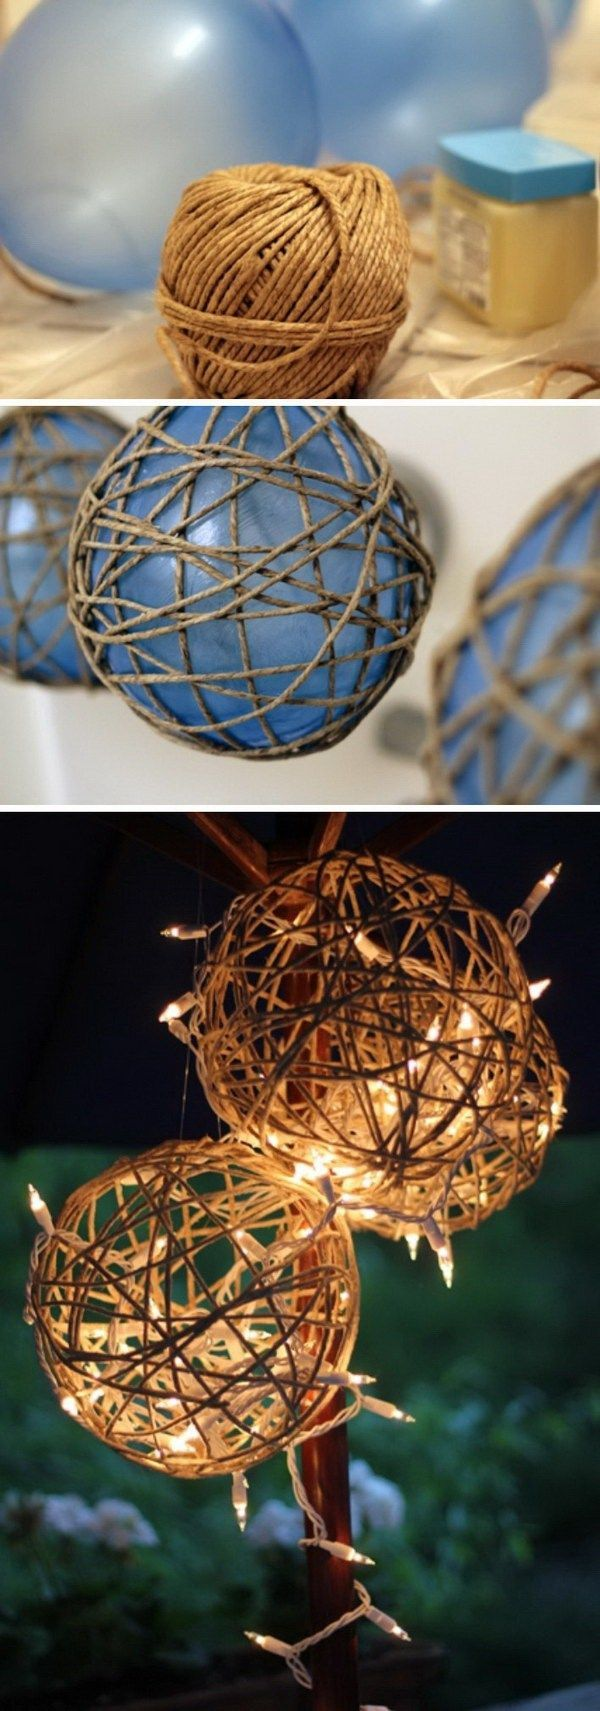 DIY Twine Garden Lanterns: Twine is the perfect material to add the rustic warm and charm to your decor. This twine garden lantern is super easy and quick to make. Other really great ideas!